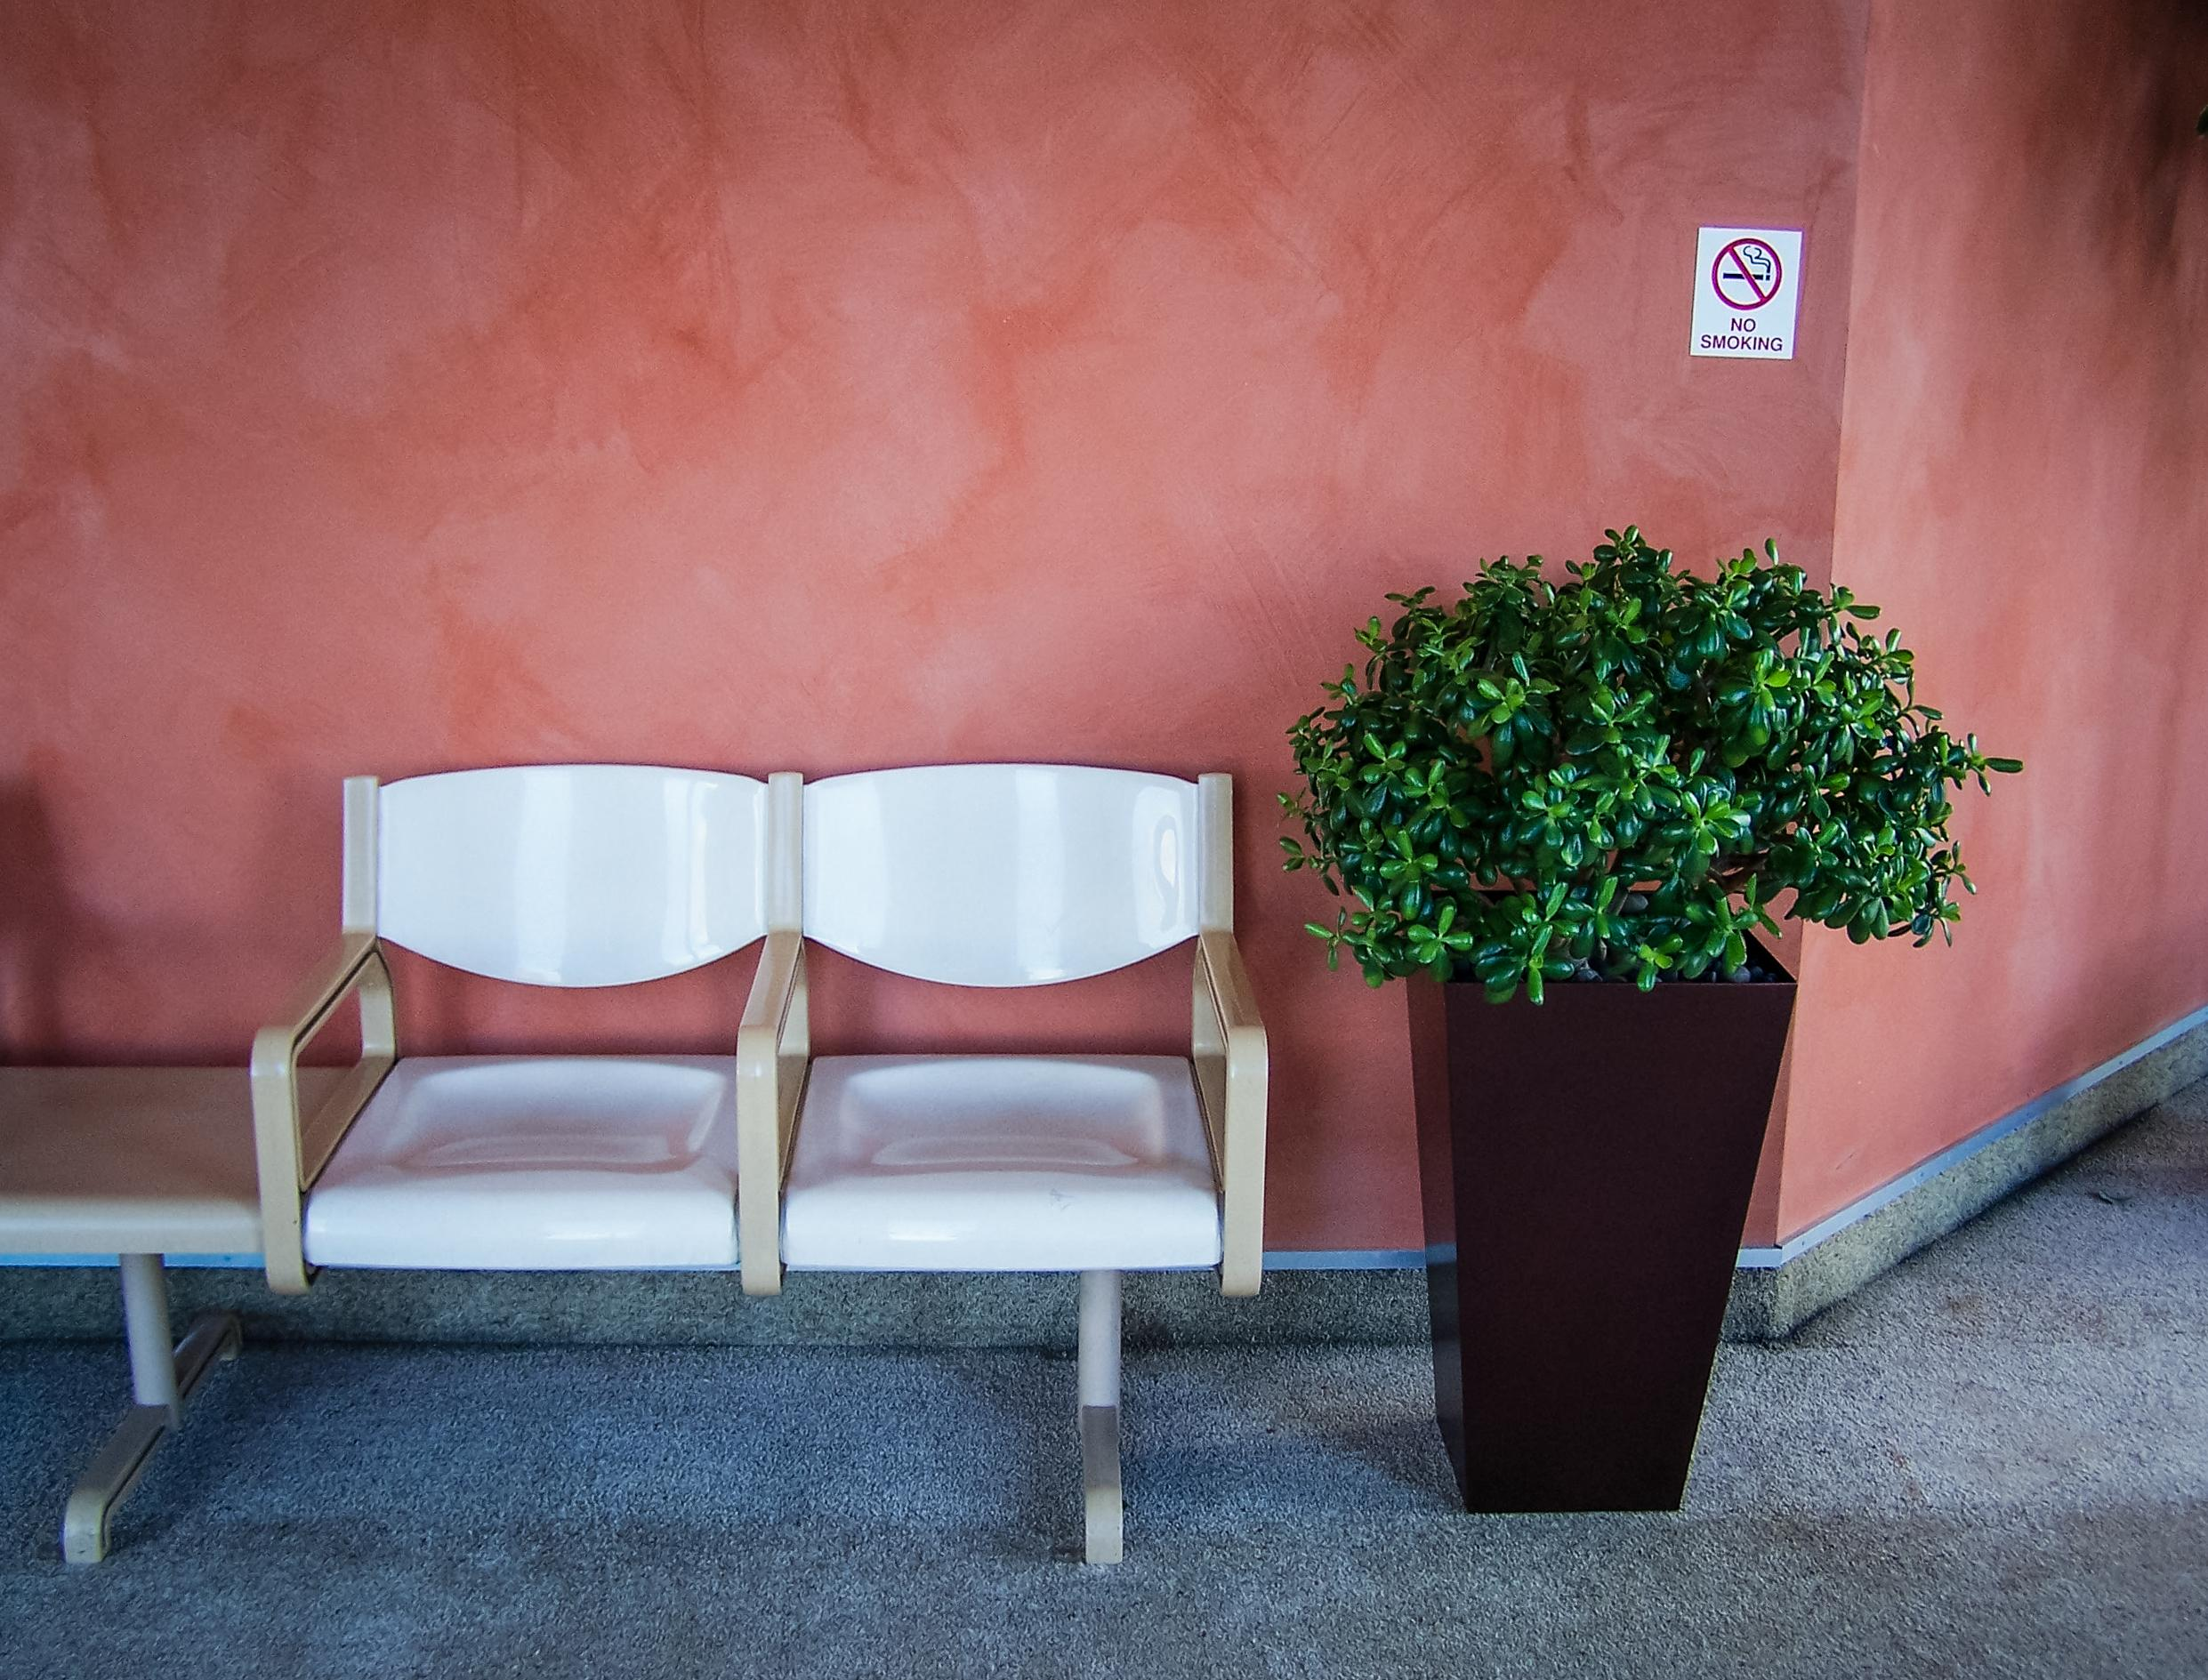 A Waiting Room in Motion